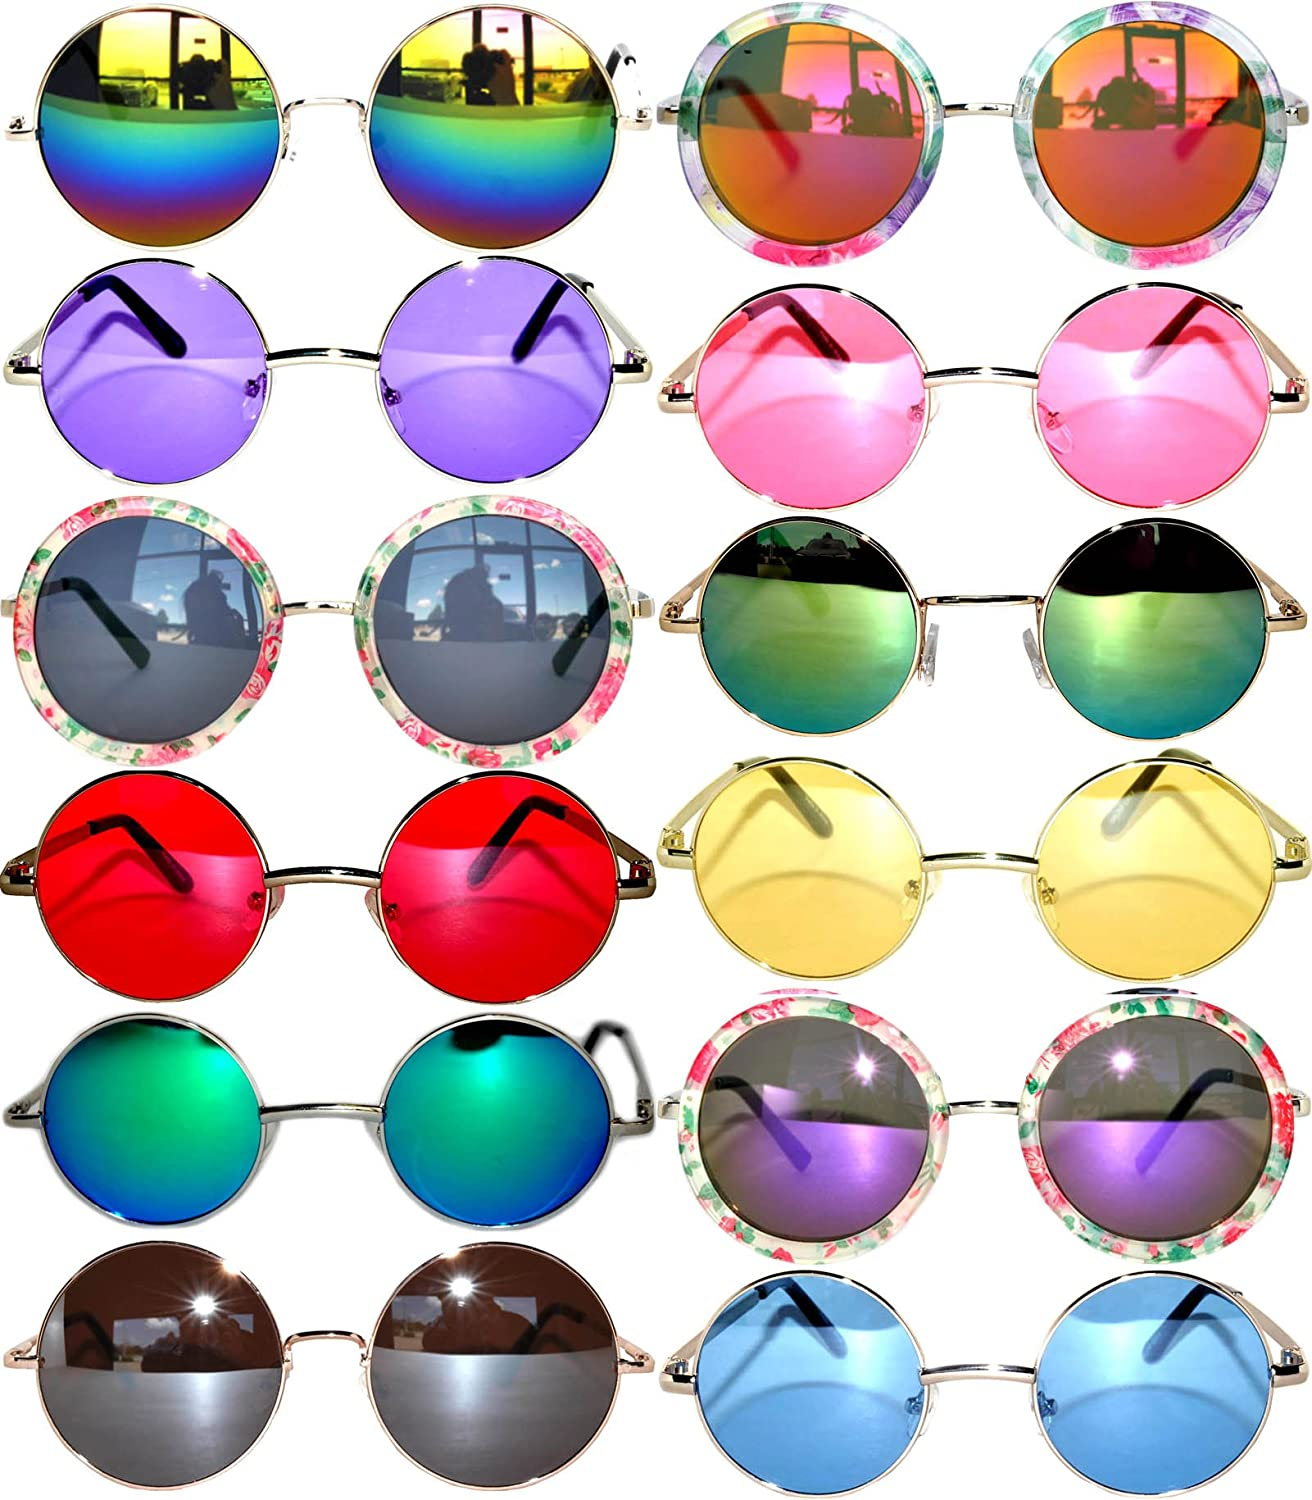 66dfc2b72124e Arm  12.5 centimeters. This lot consists of different size and colors of  lenses. Retro Style Round Circle Colored Lens Vintage Tint Sunglasses ...